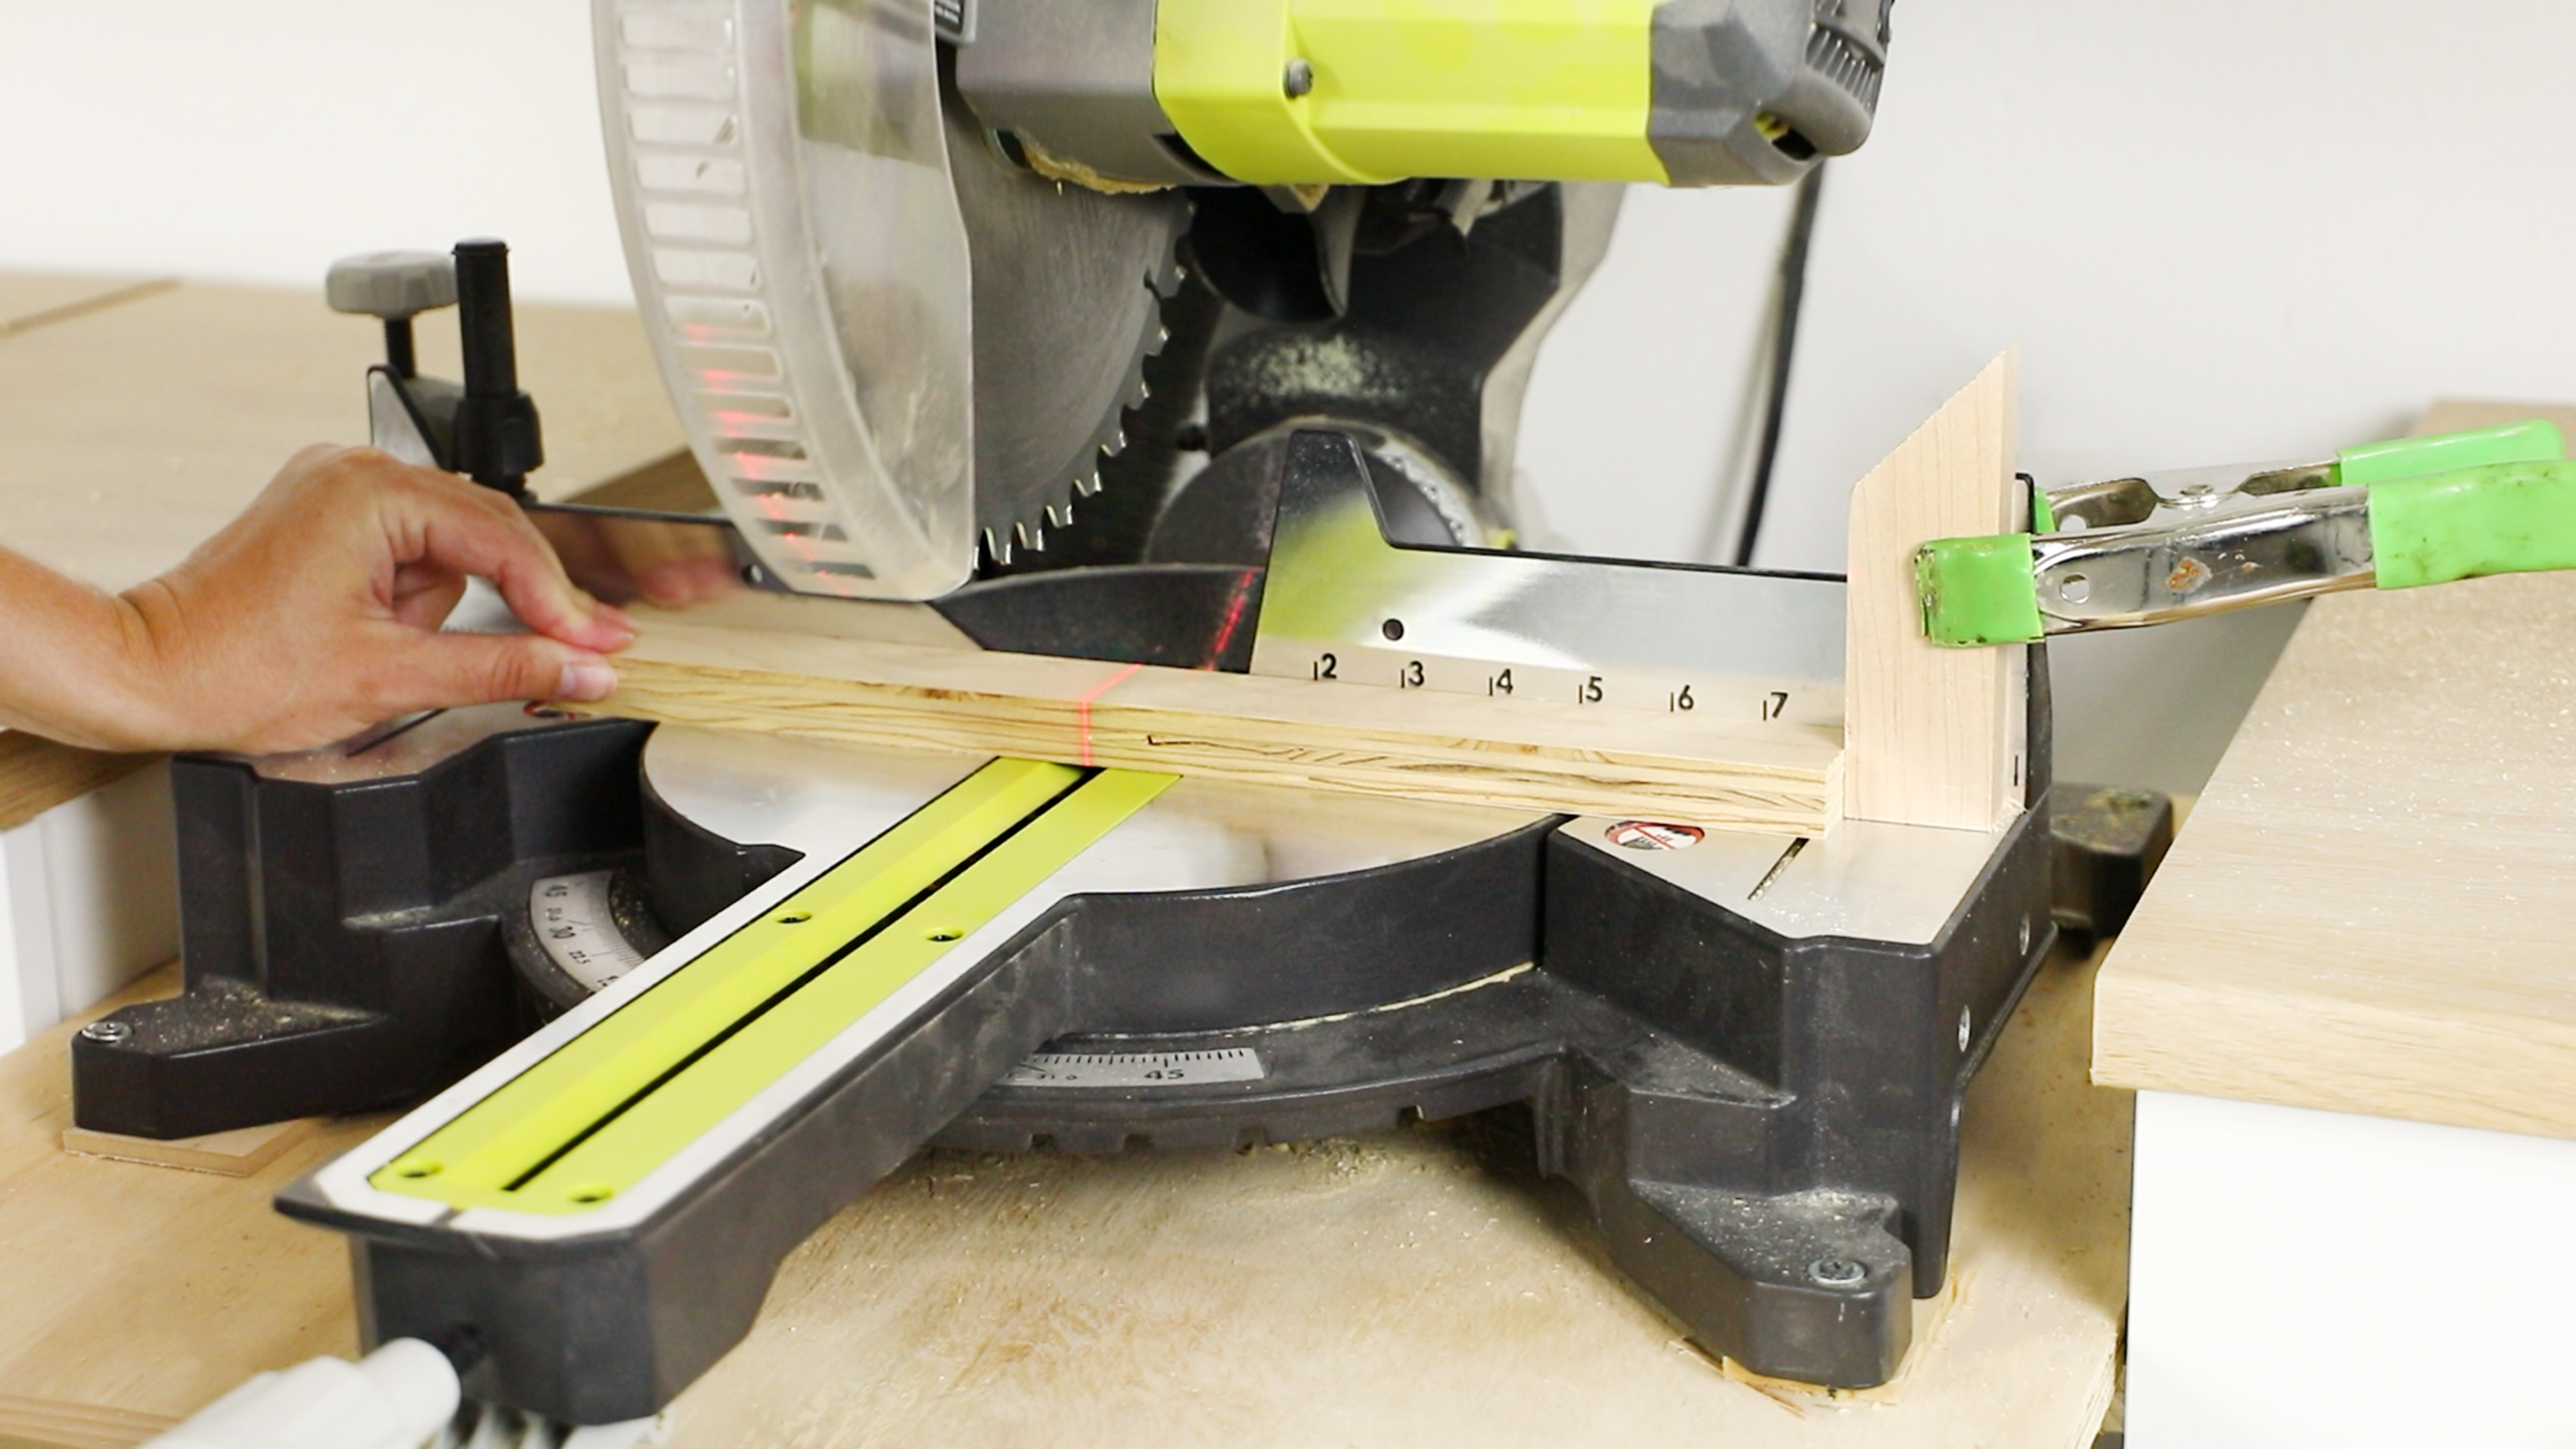 Cutting with a miter saw